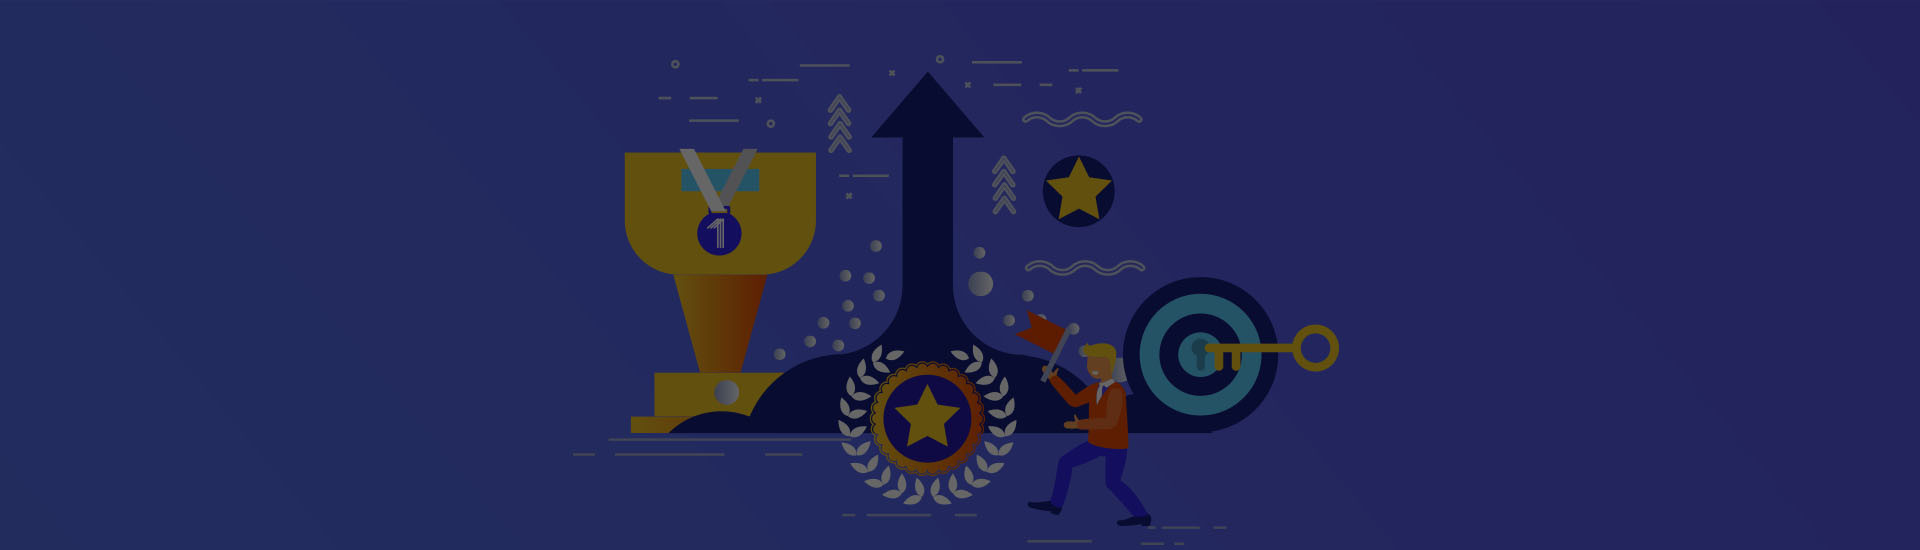 7 mobile app awards that can help you gain exposure